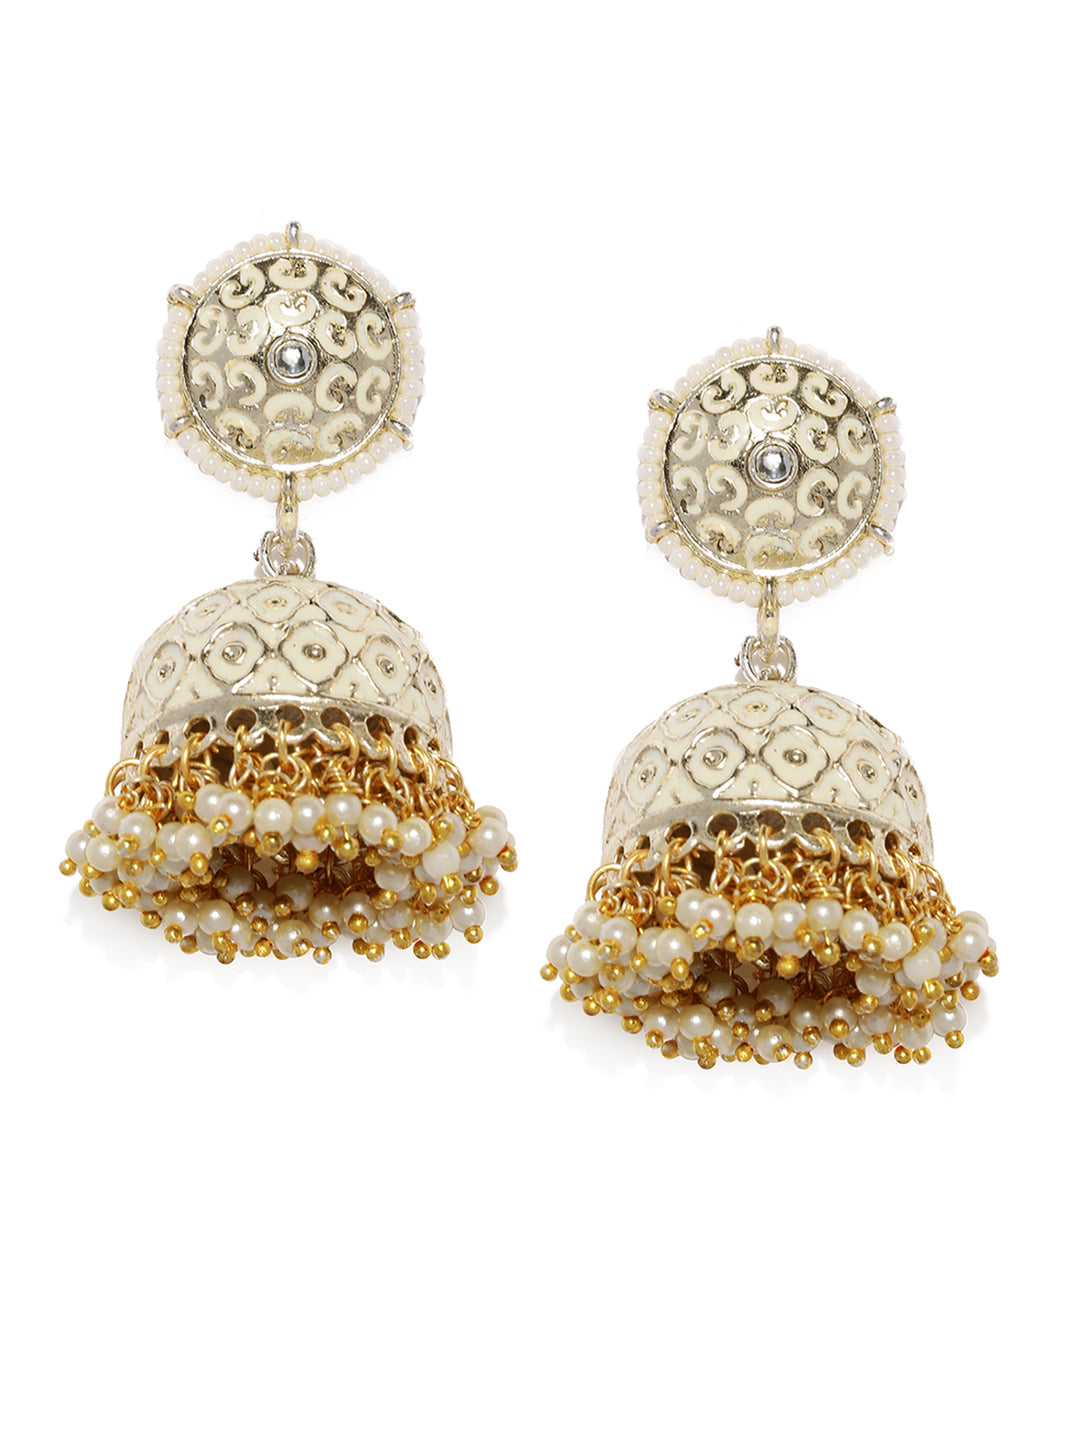 Asmitta Jewellery White Zinc Jhumki Earring - EJ747